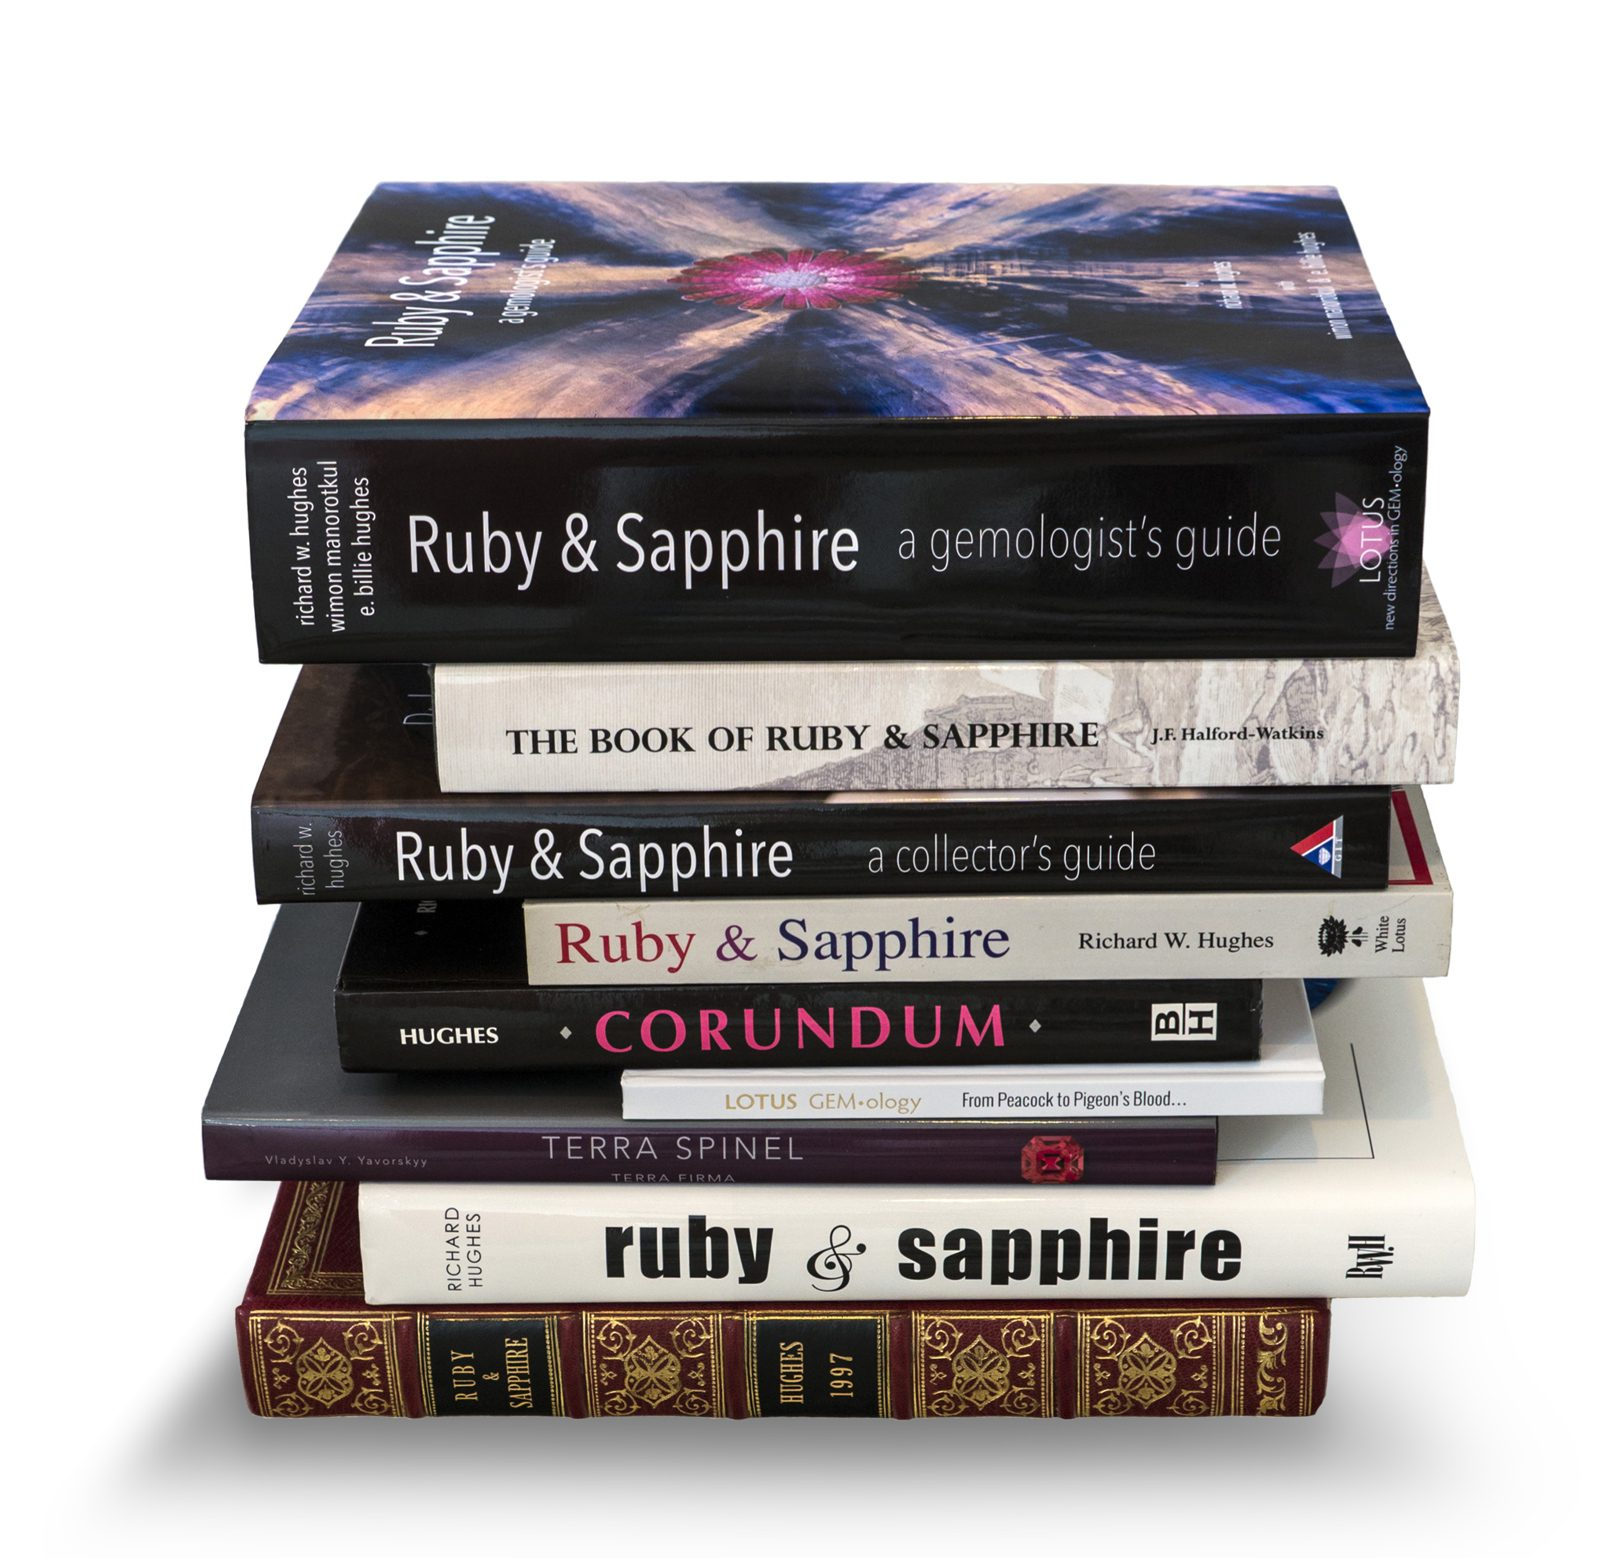 books by ruby expert richard hughes